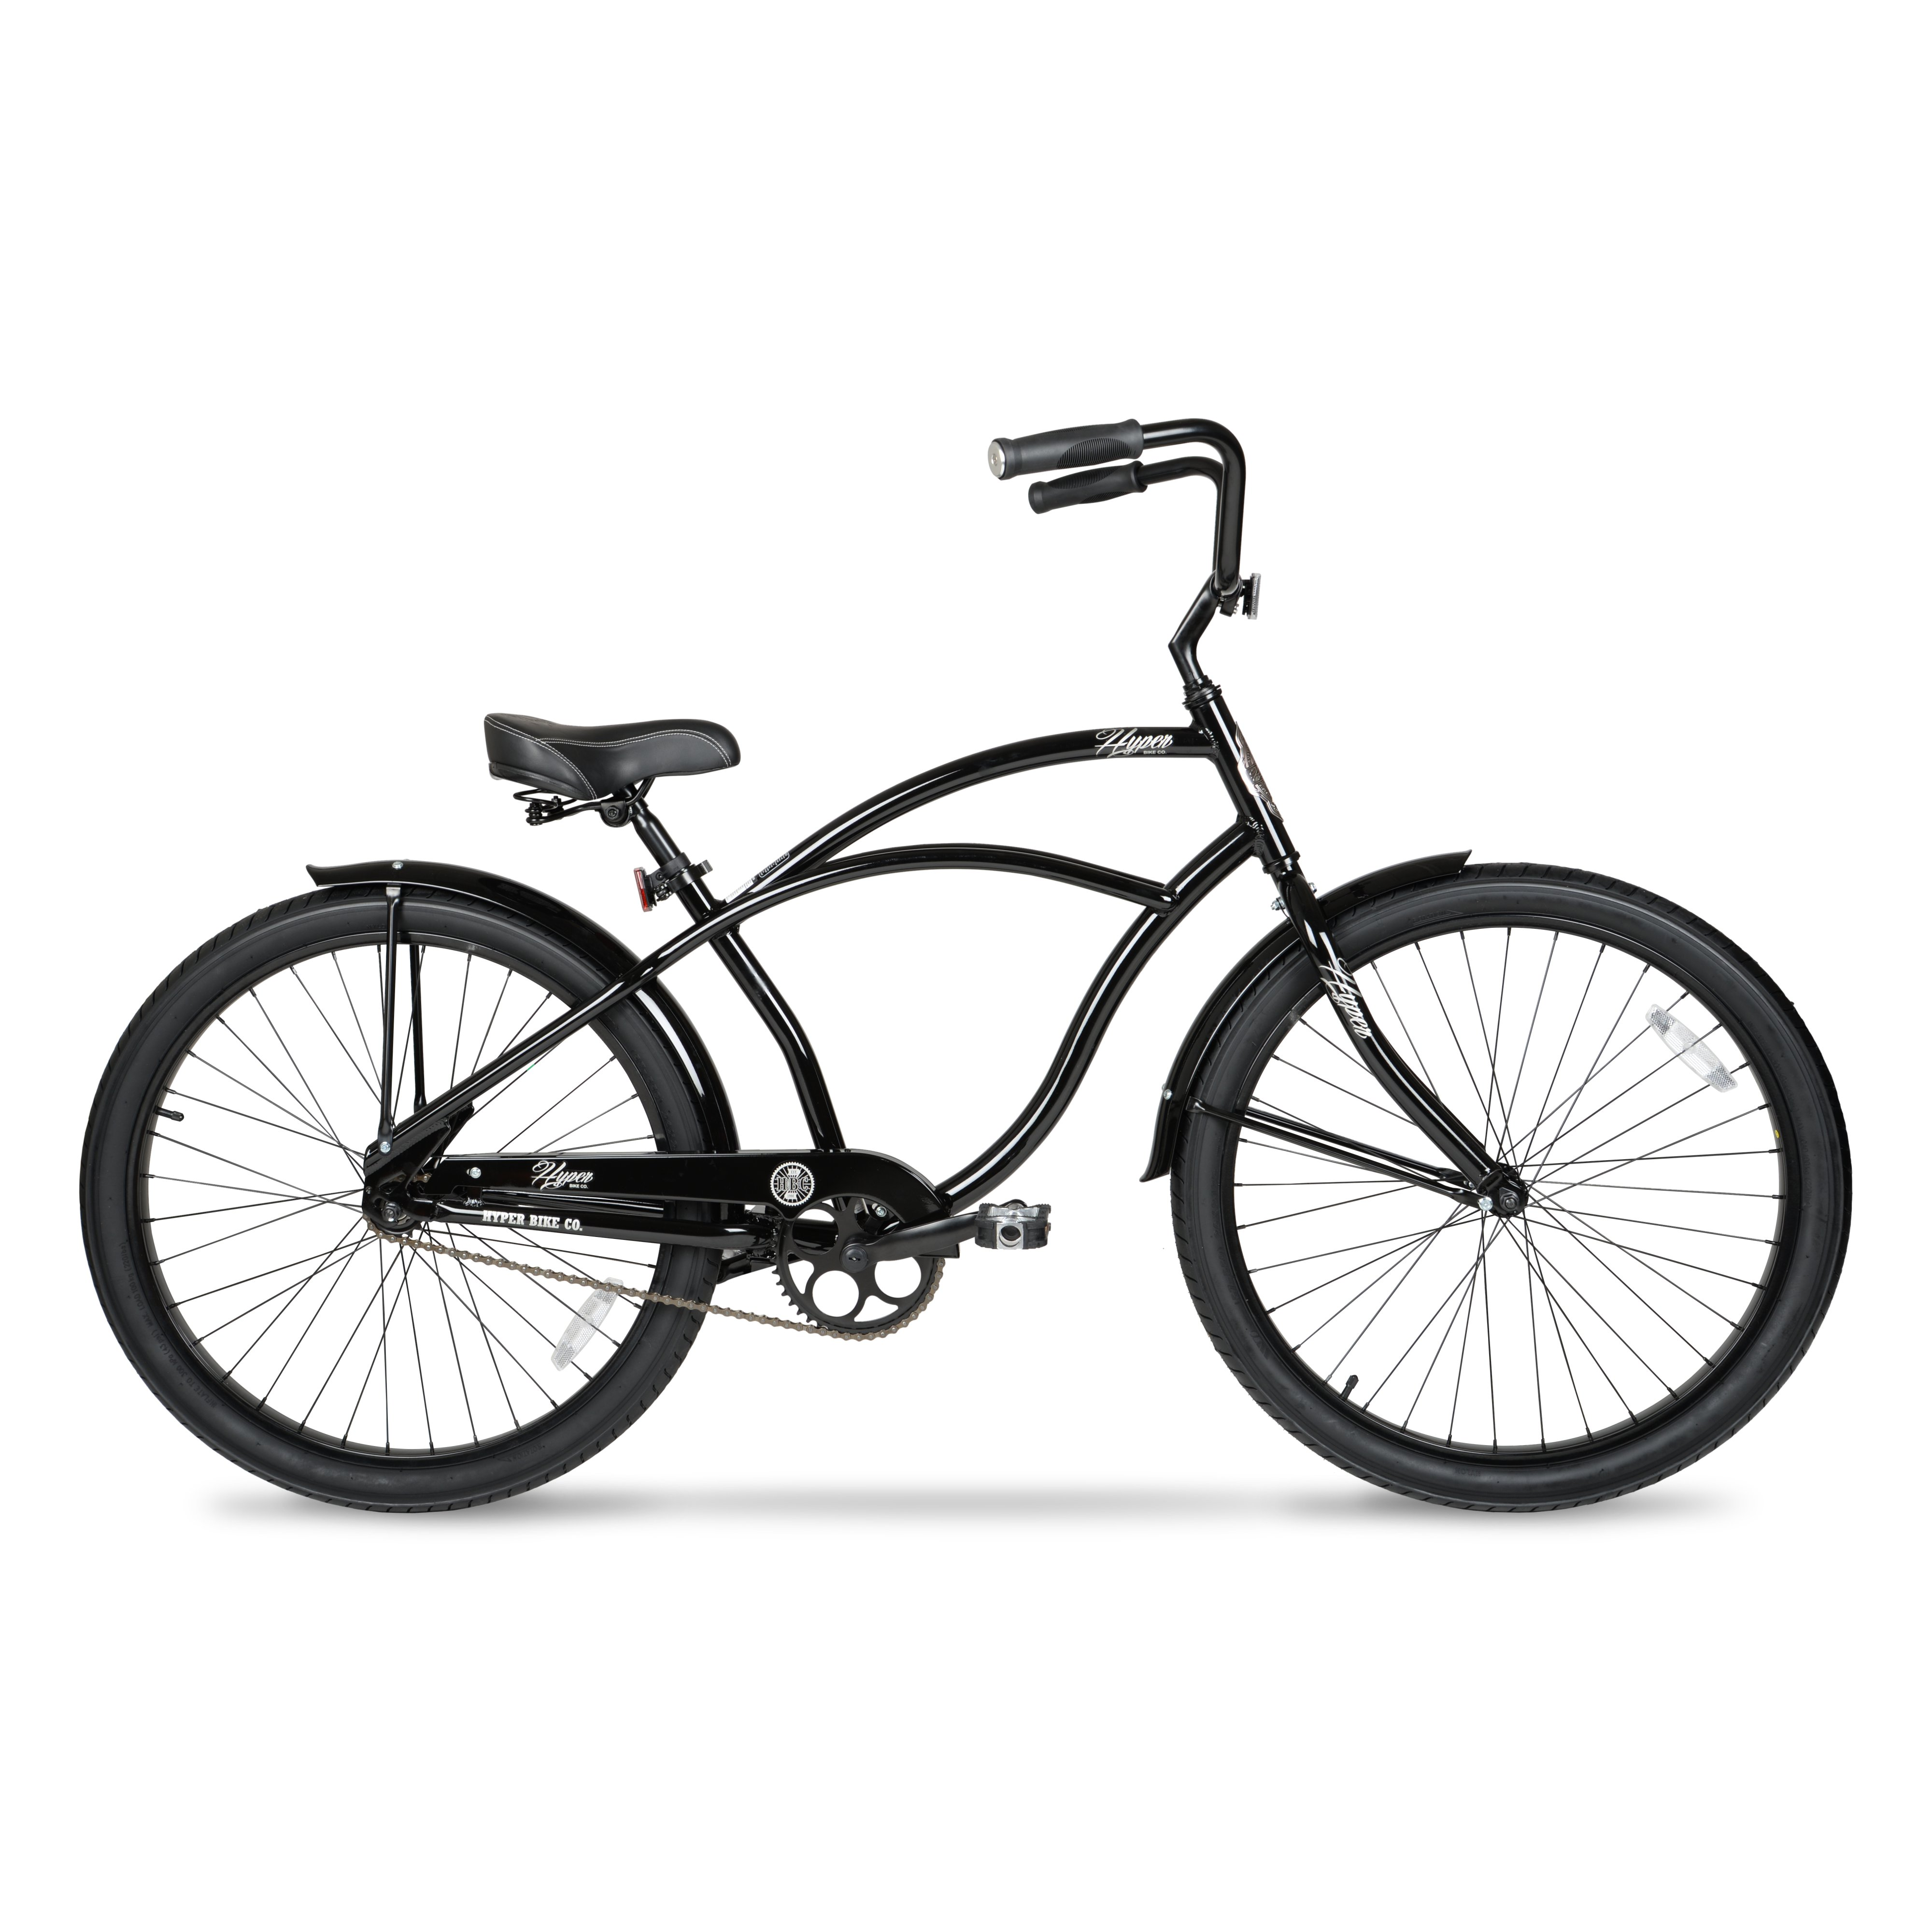 "Hyper 26"" Men's Beach Cruiser Bike"